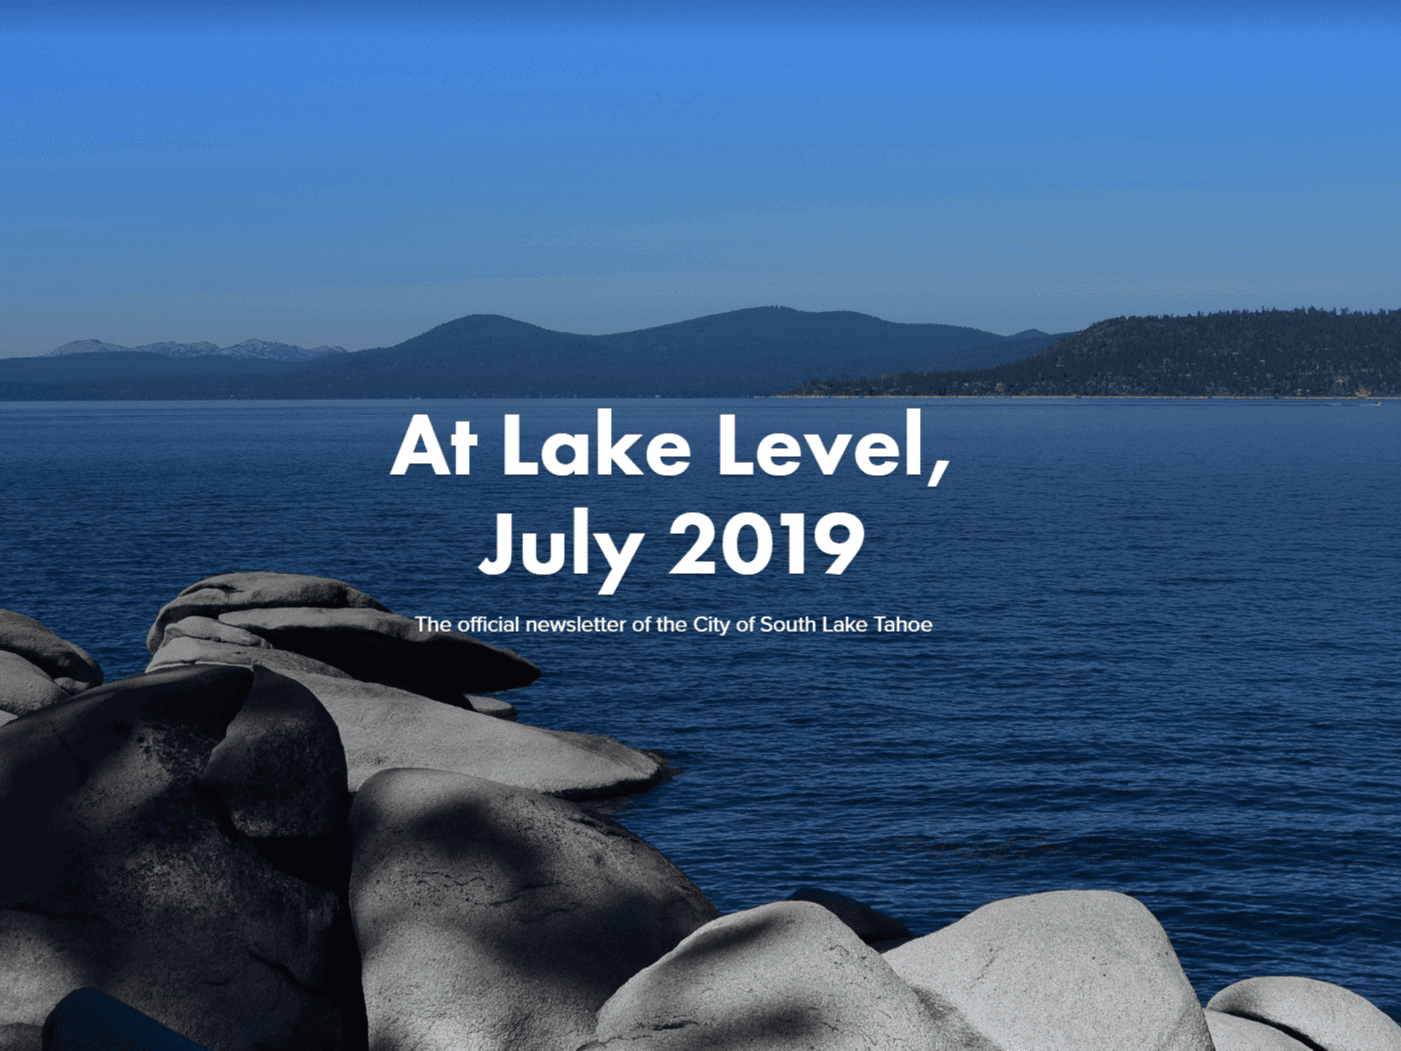 AT Lake Level July 2019